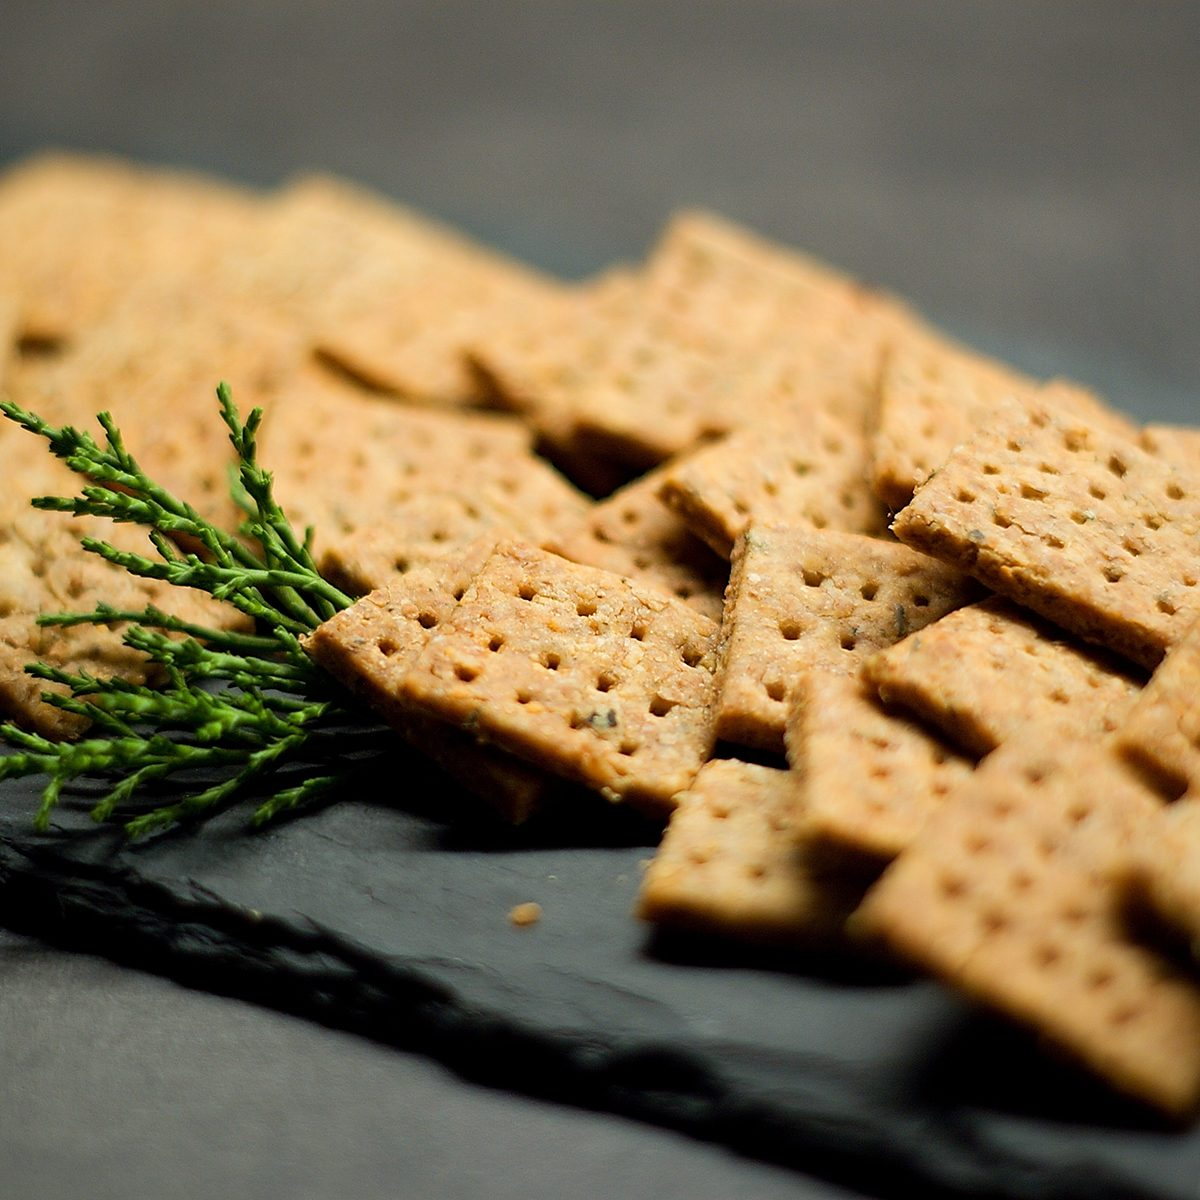 Homemade cheese whole grain squared crackers on slate tray